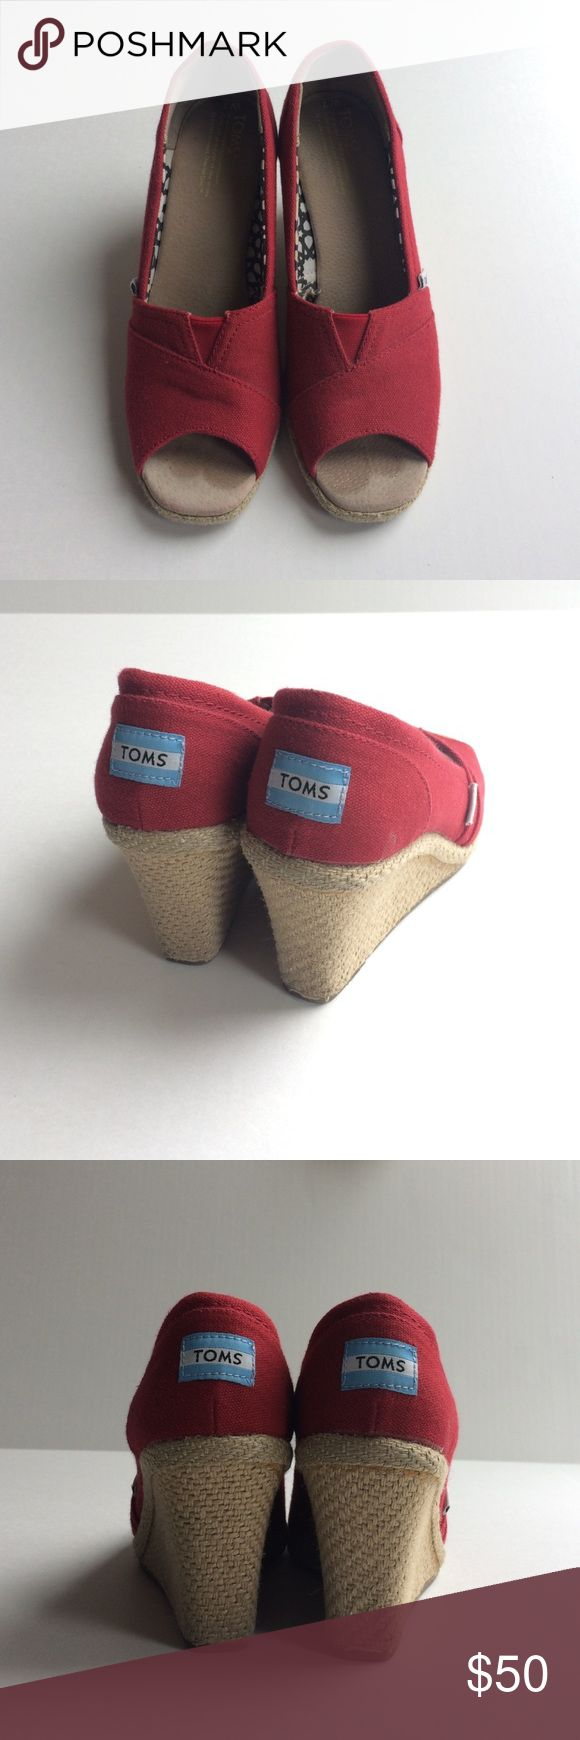 Toms Peep-Toe Wedges Red peep toe wedges in great condition. Worn a few times. Super comfortable! TOMS Shoes Wedges